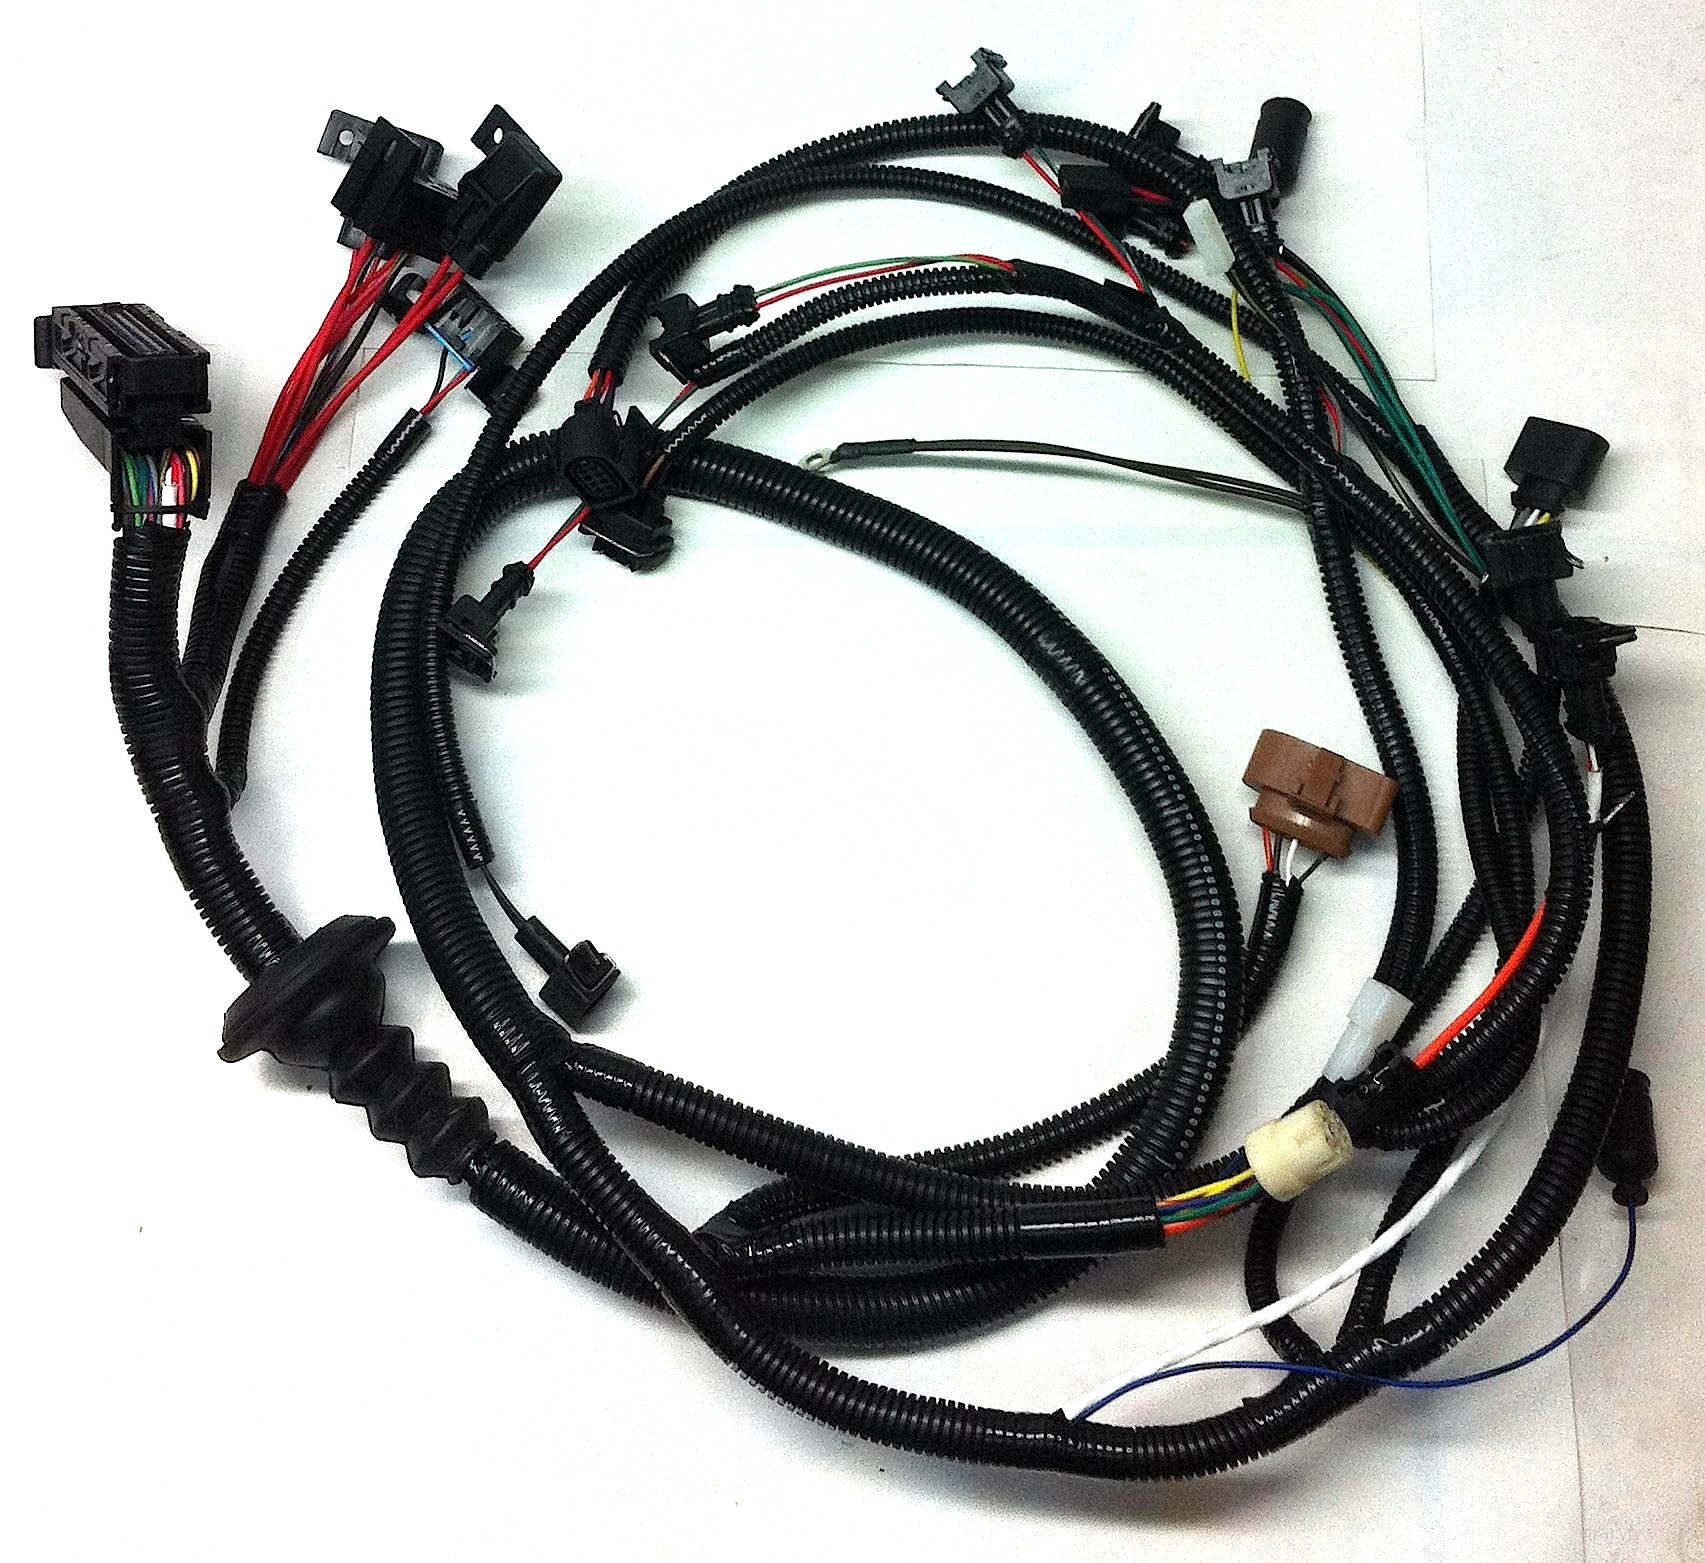 2lr tiico conversion wiring harness foreign auto supply inc rh foreignautosupply com replacement car stereo wiring harness Sony Car Stereo Wiring Harness